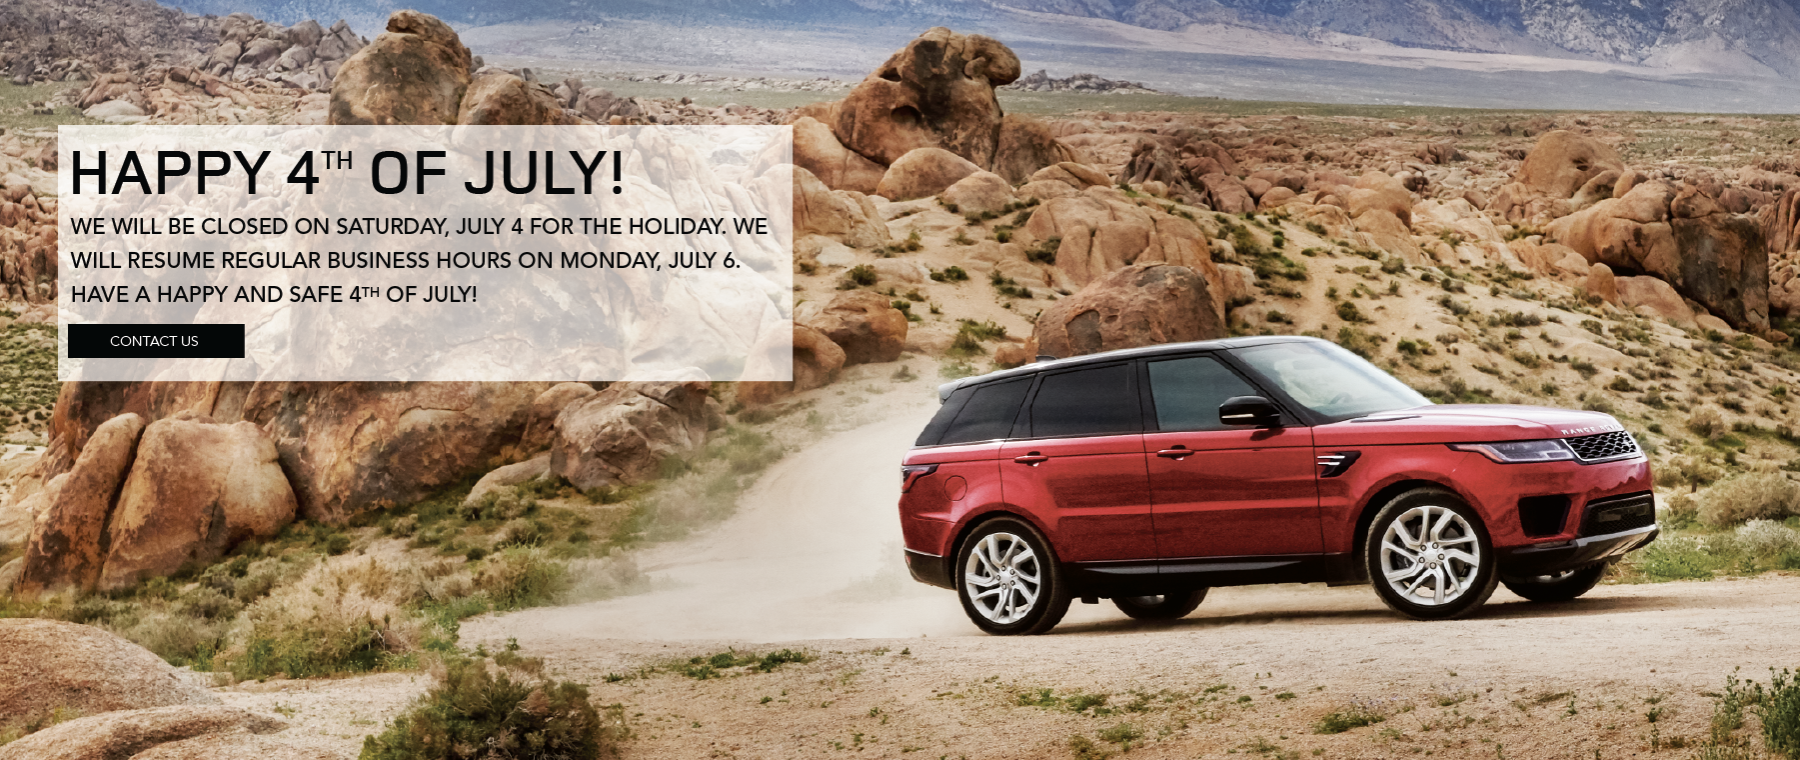 Red 2020 Range Rover on rocjy dirt road. Happy 4th of July! We will be closed on Saturday July 4 for the holiday. We will resume regular business hours on Monday, July 6. Have a happy and safe 4th of July! Click to contact us.